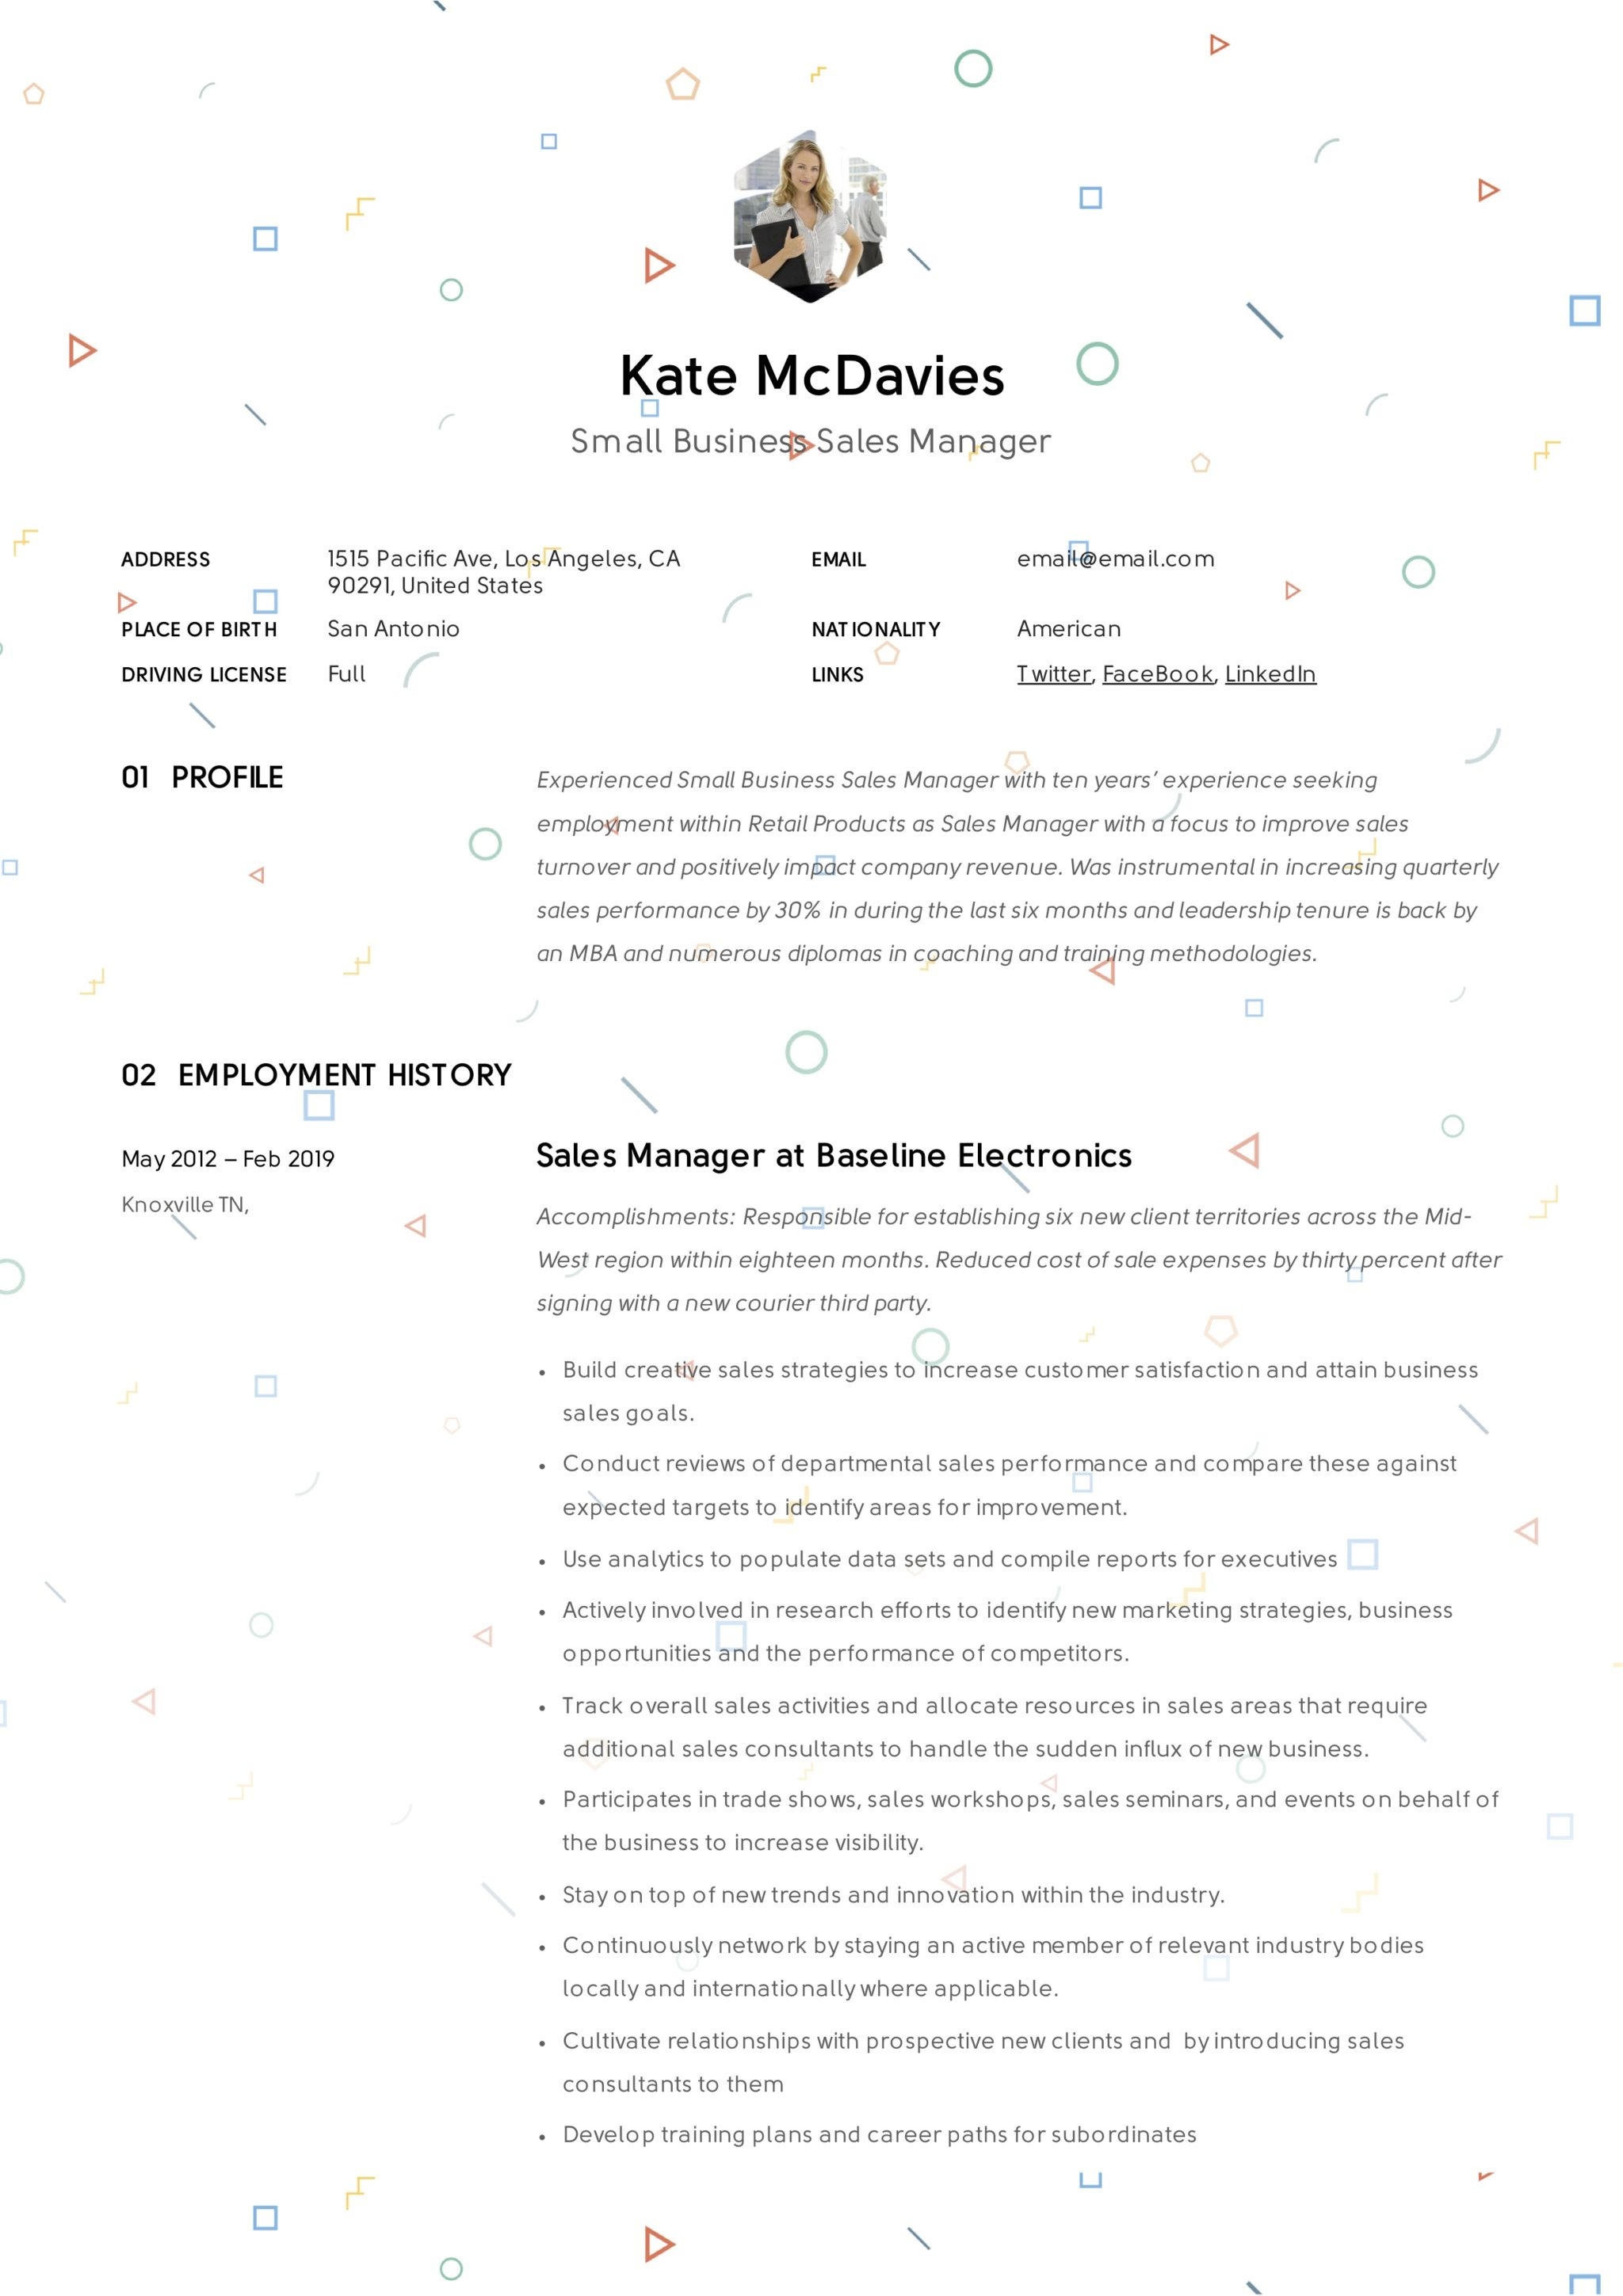 Small Business Sales Manager Resume Example (7)